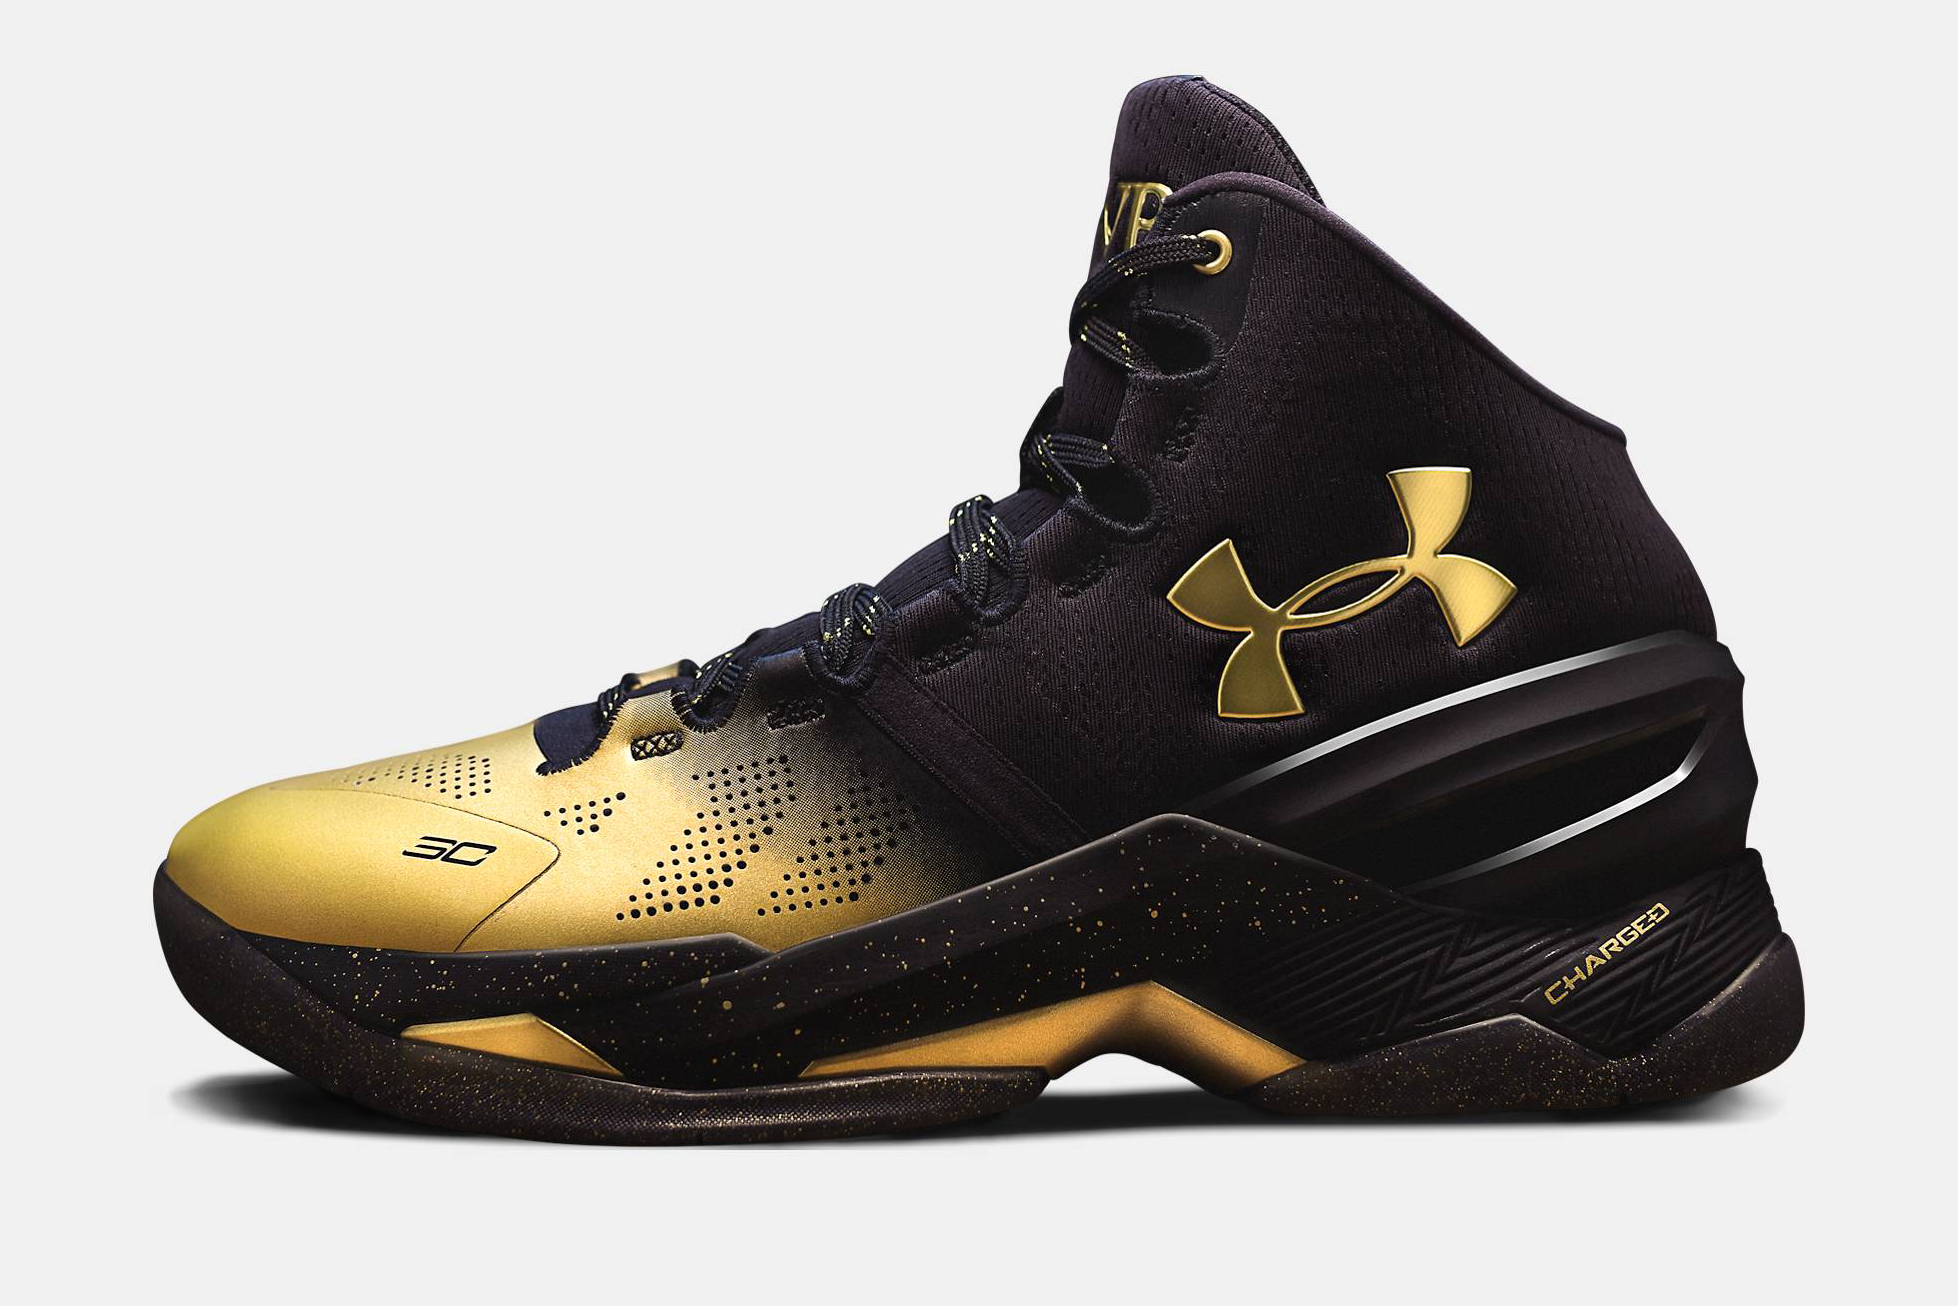 steph currys latest under armour sneaker roasted by